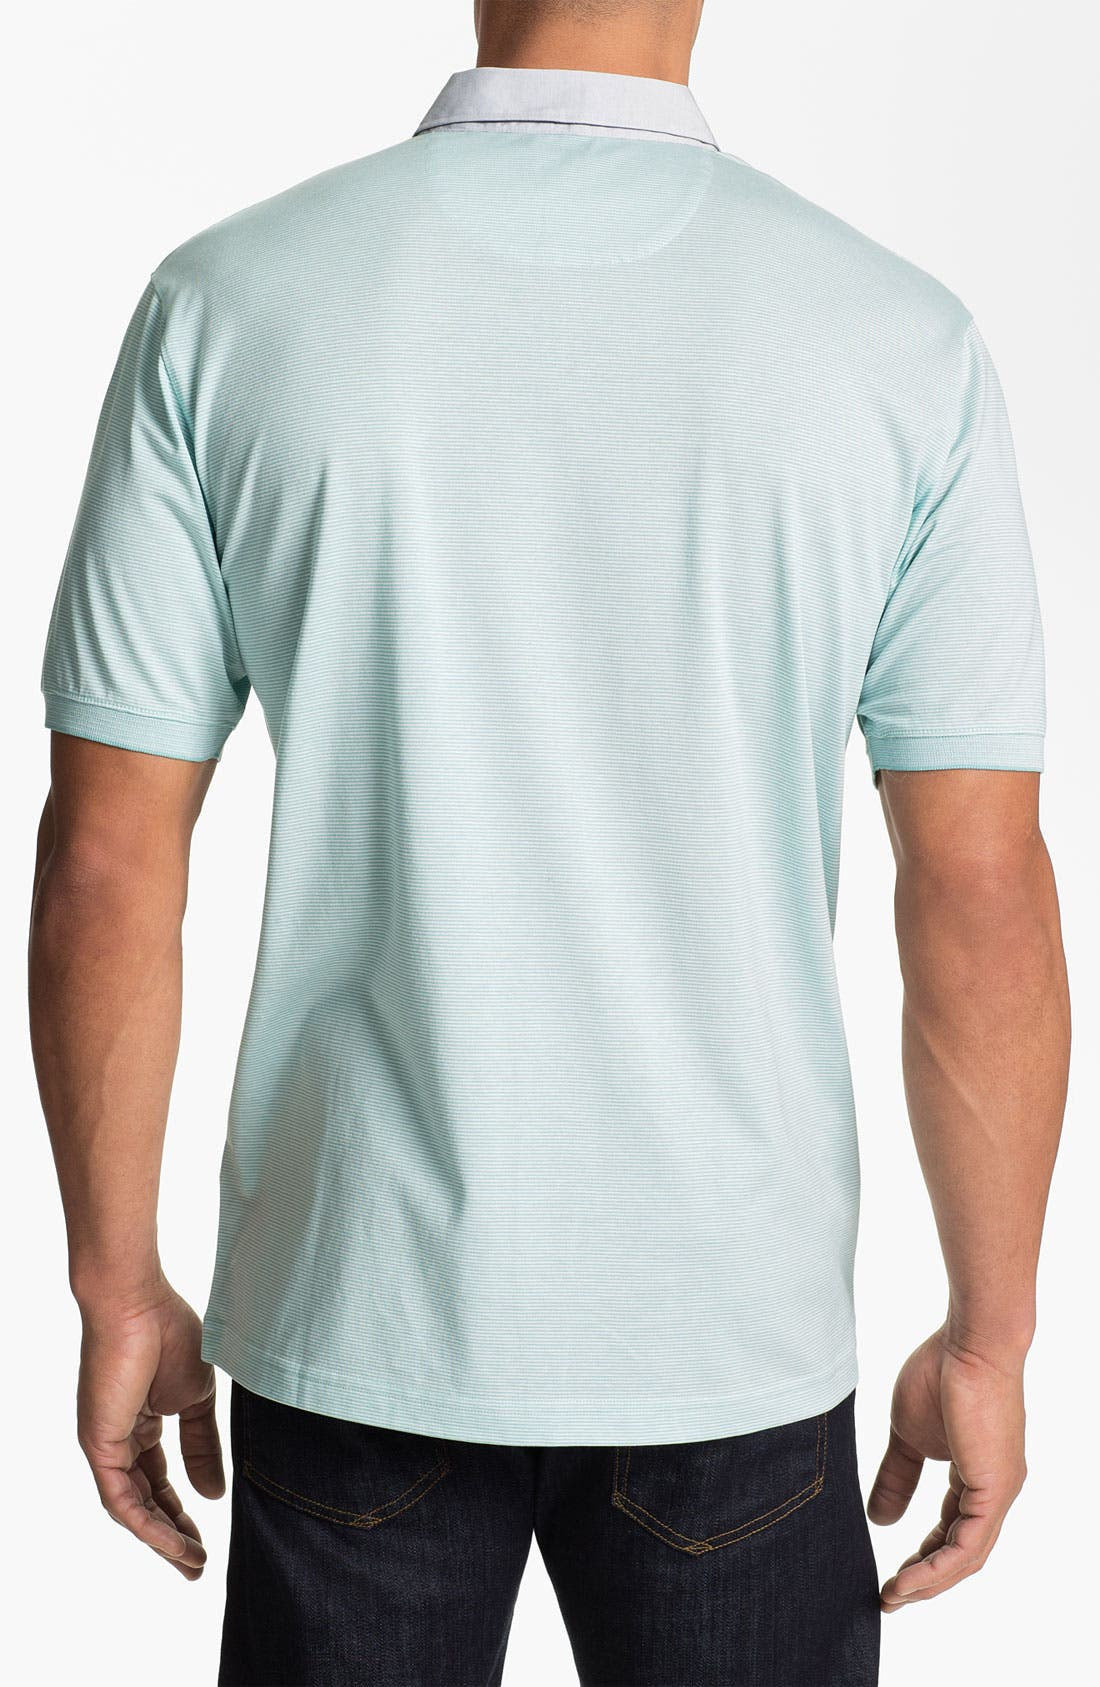 Alternate Image 2  - Cutter & Buck 'Midvale' Pima Cotton Polo (Big & Tall)